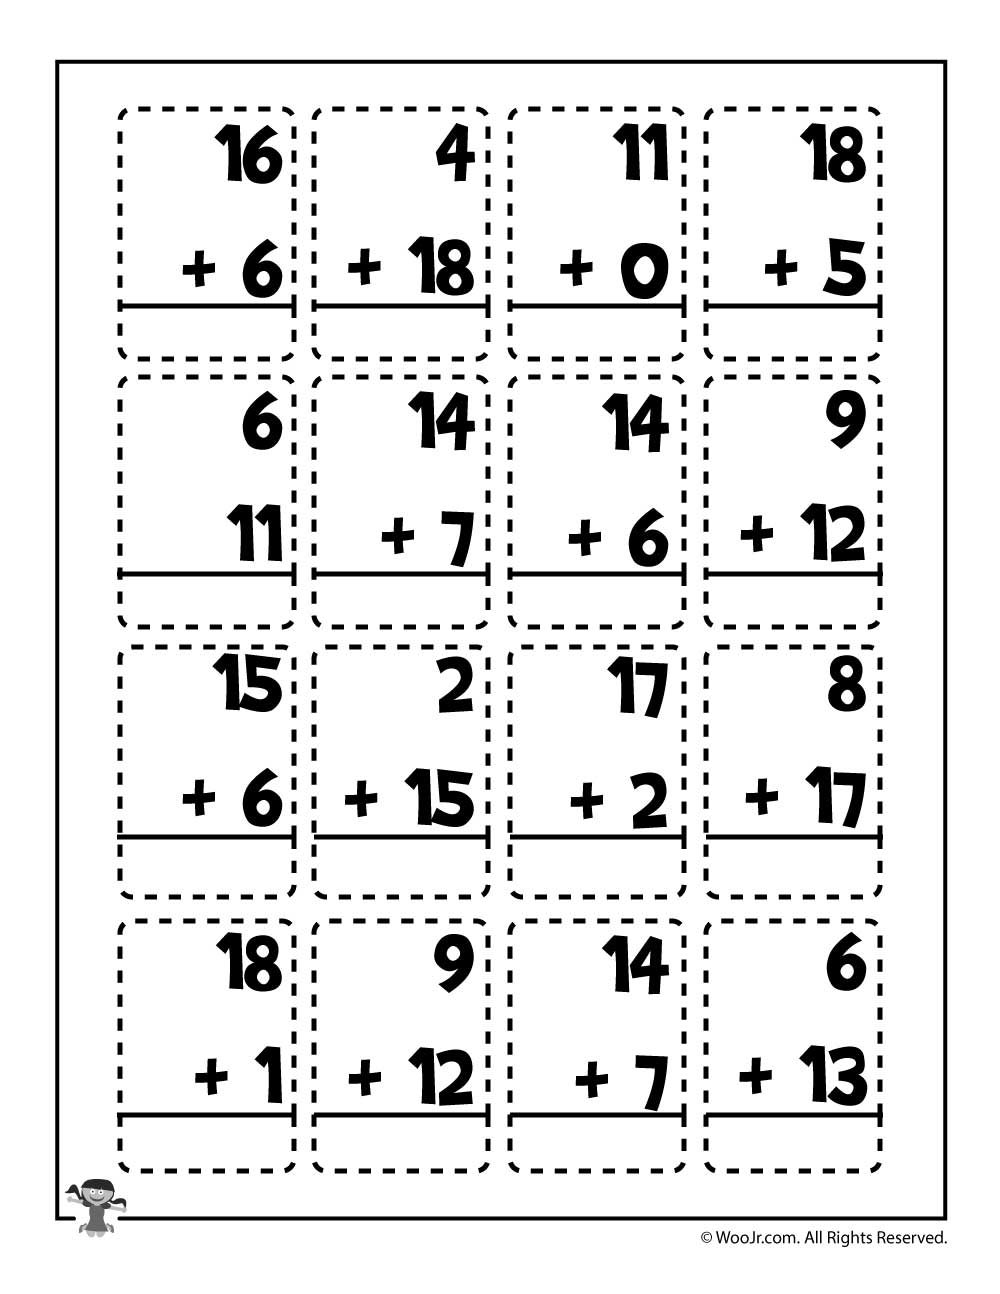 hight resolution of Math Addition Worksheet for 2nd Graders   Woo! Jr. Kids Activities